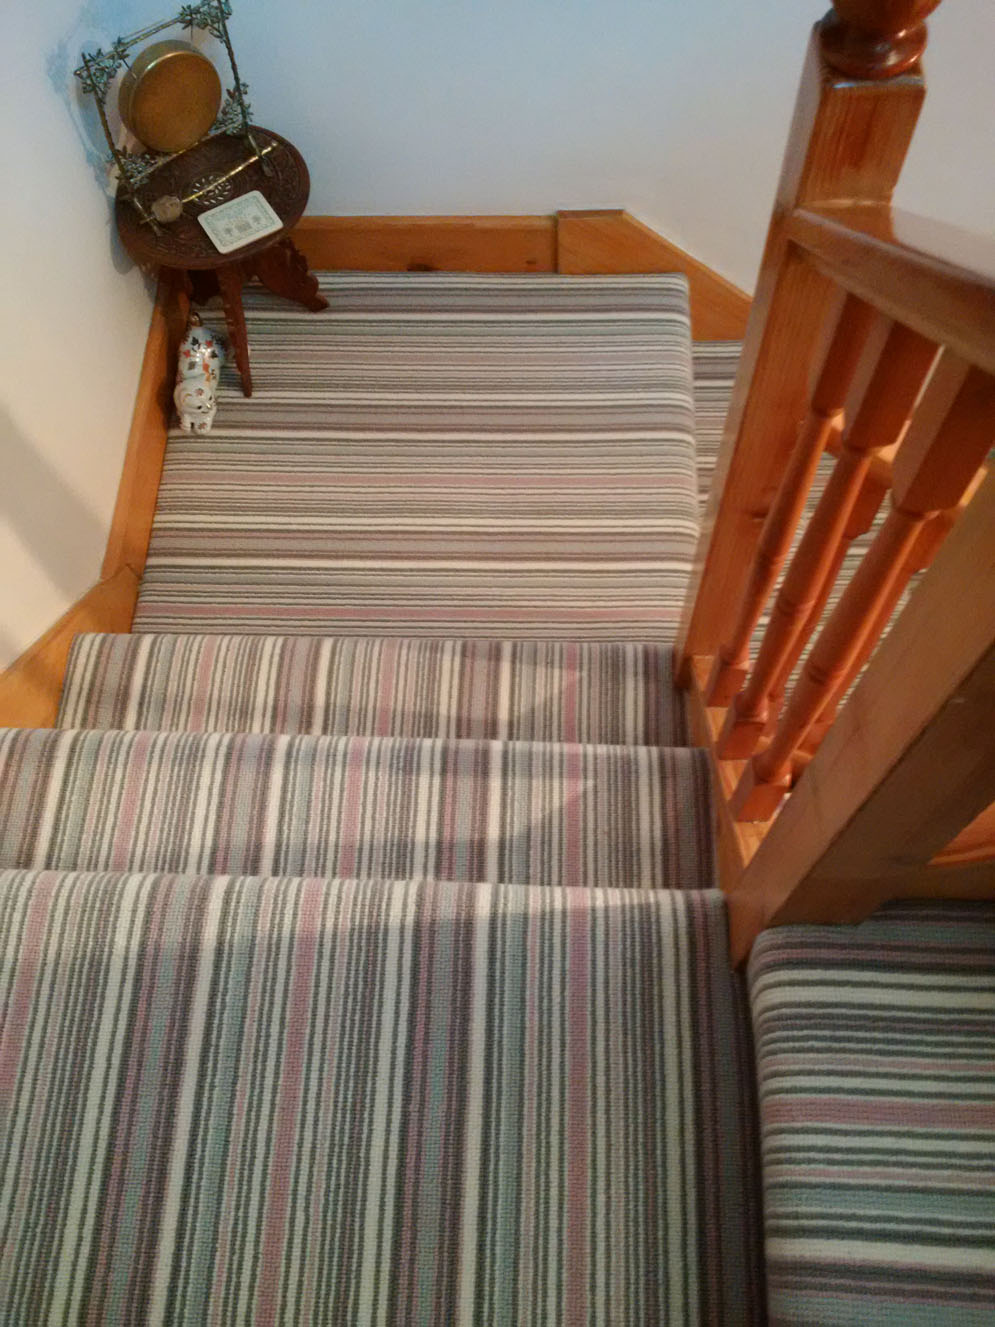 Crucial Trading striped carpet fitted<div style='clear:both;width:100%;height:0px;'></div><span class='cat'>Previous Projects, Crucial Trading</span>